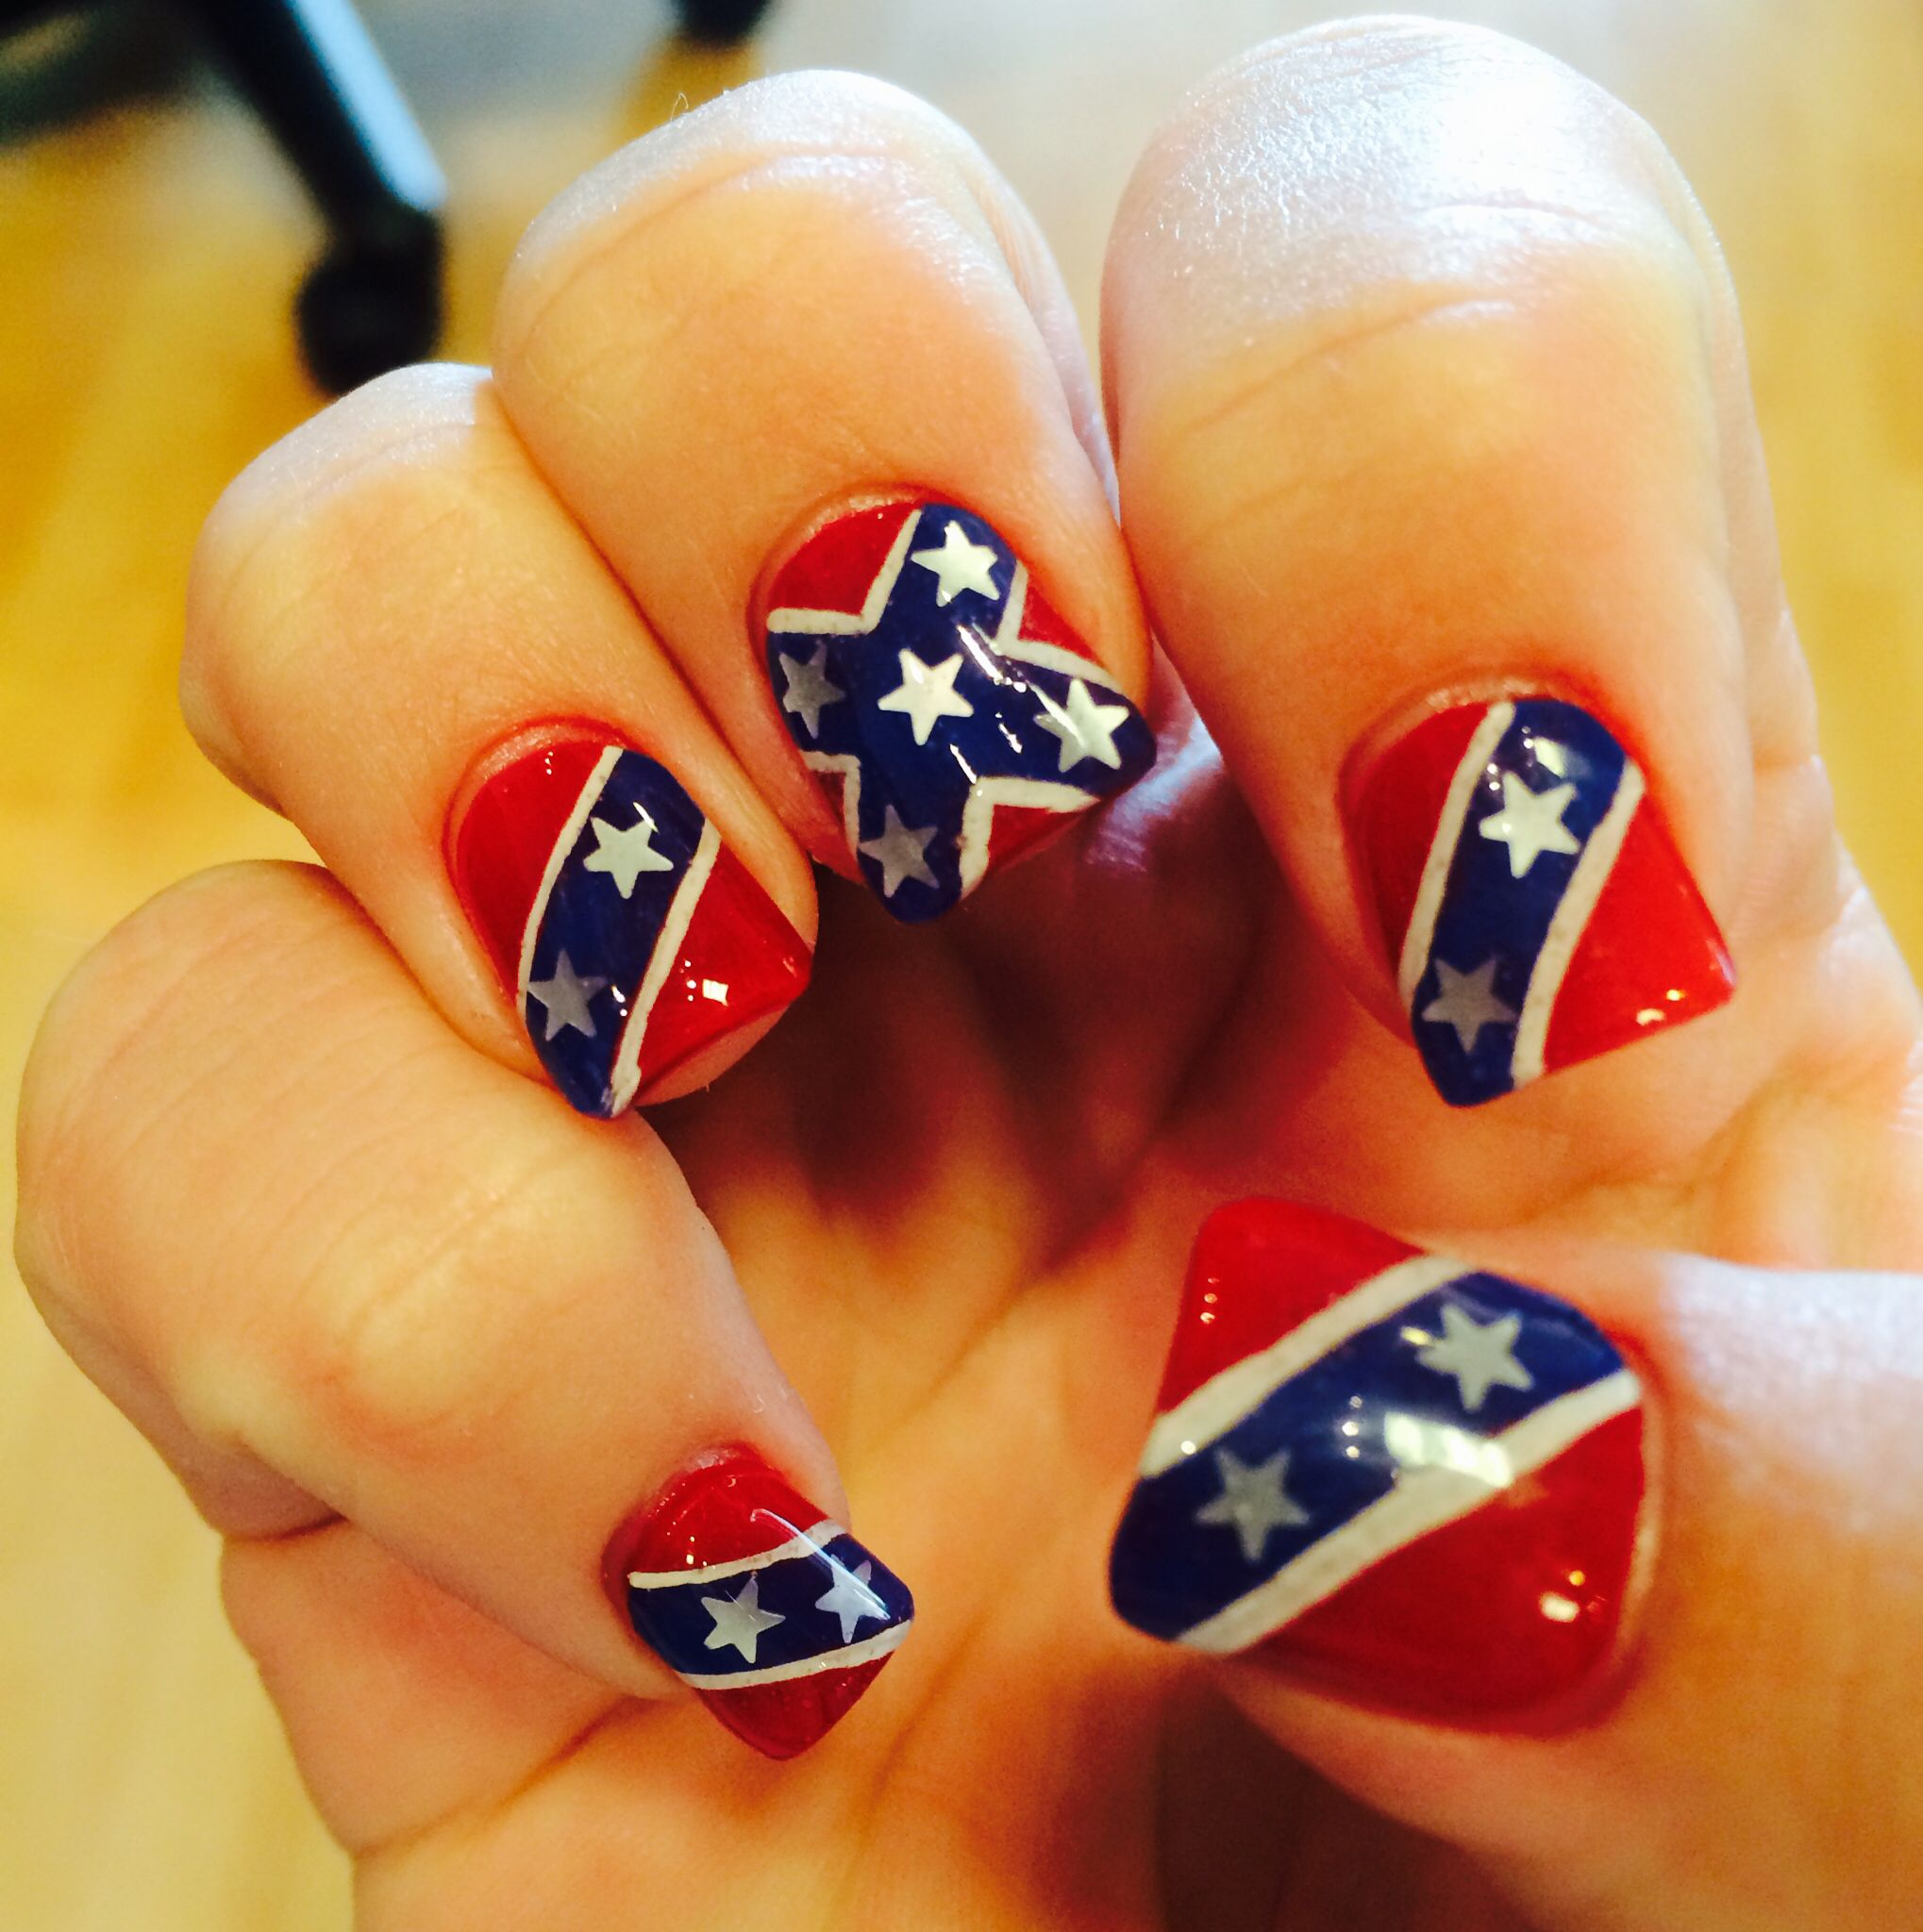 Confederate flag nails nails pinterest confederate flag confederate flag nails prinsesfo Gallery